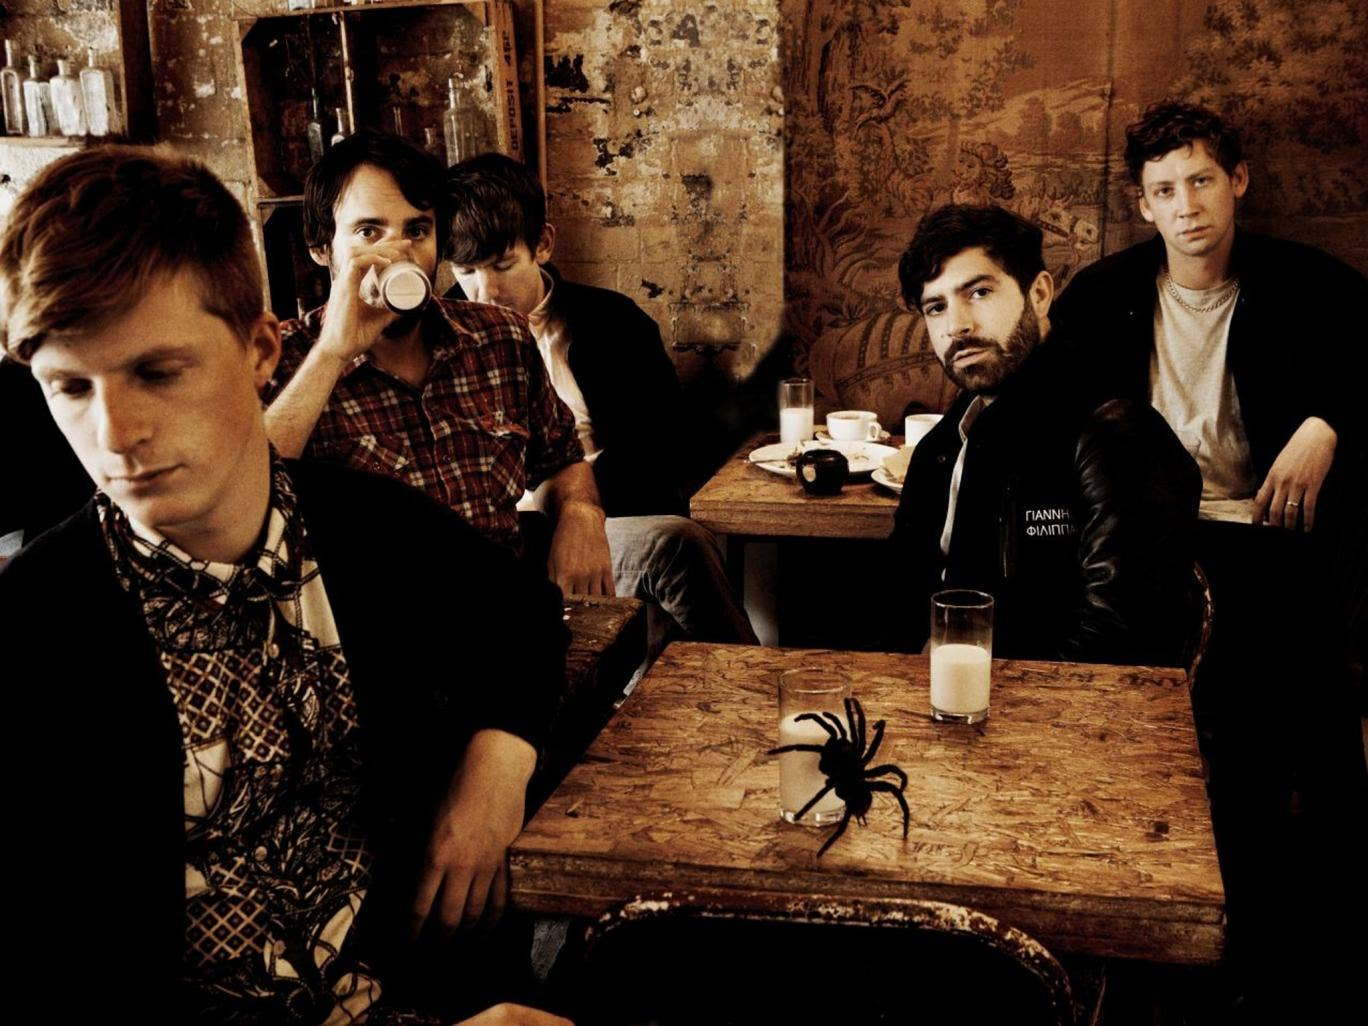 Café society: Jack Bevan, Jimmy Smith, Edwin Congreave, Yannis Philippakis and Walter Gervers of Foals